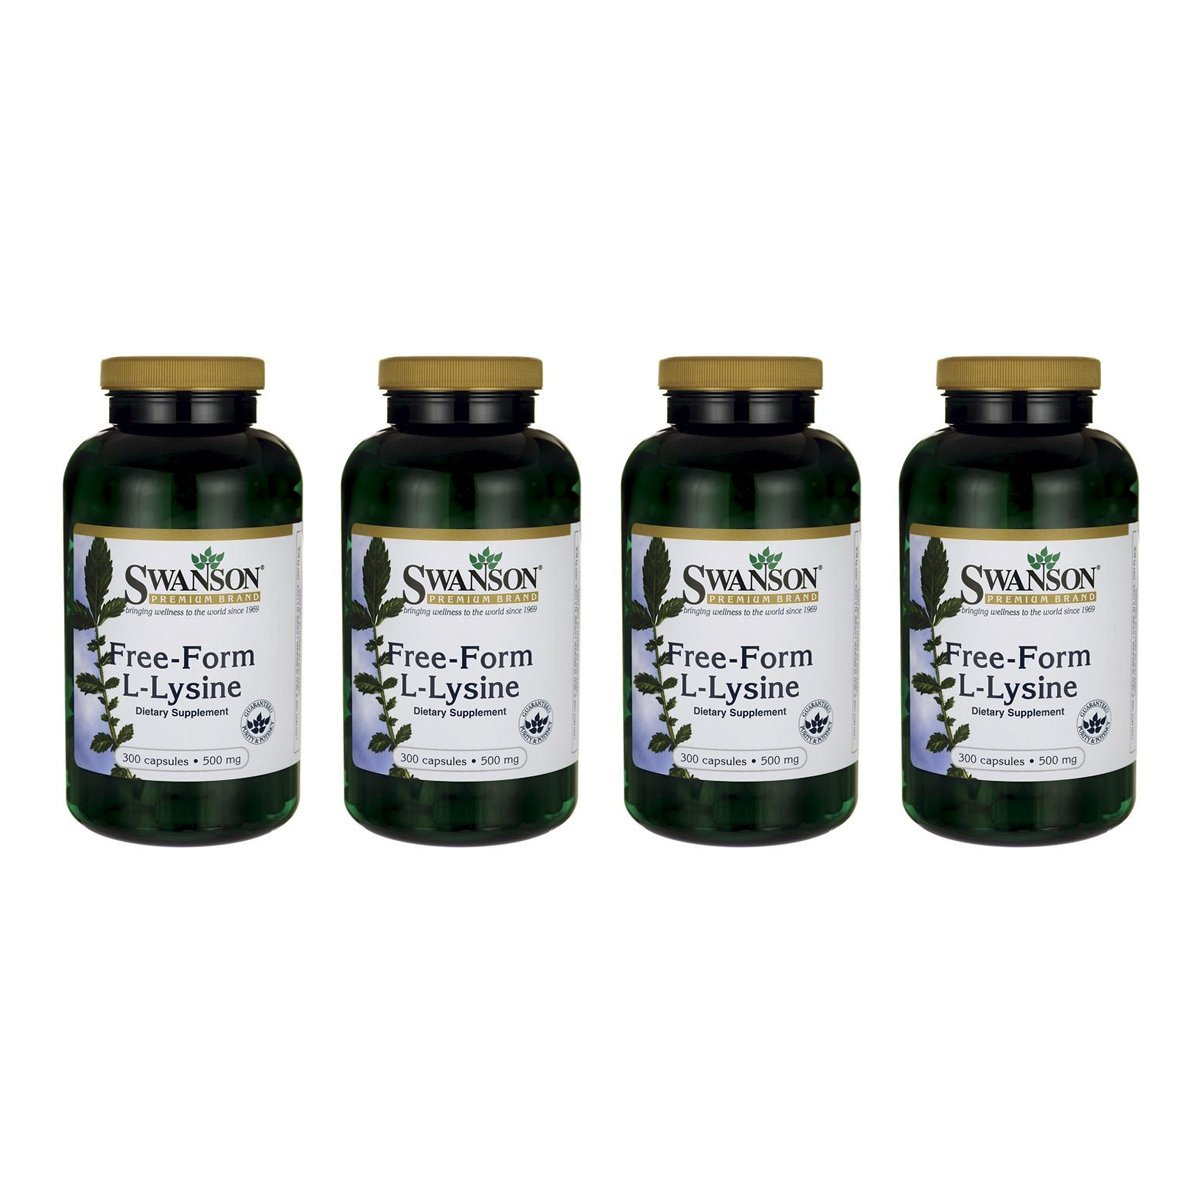 Swanson Brewer's Yeast 500 mg 500 Tabs 4 Pack